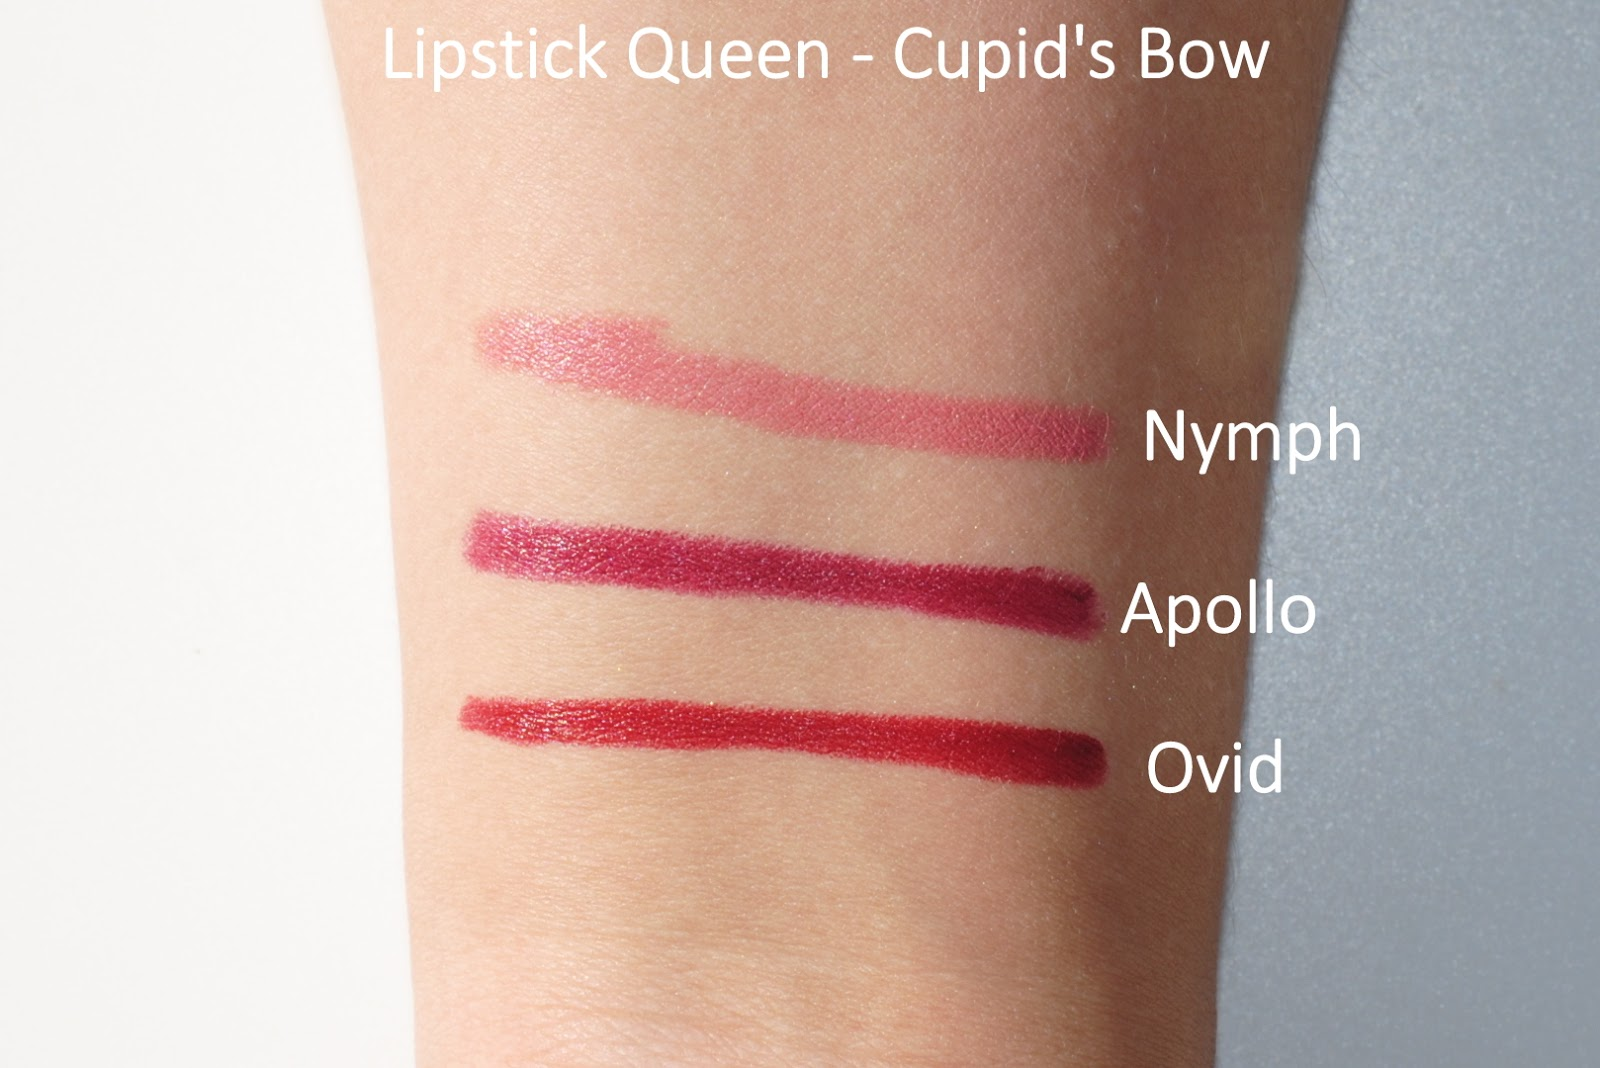 lipstick queen cupid's bow swatches apollo nymph ovid